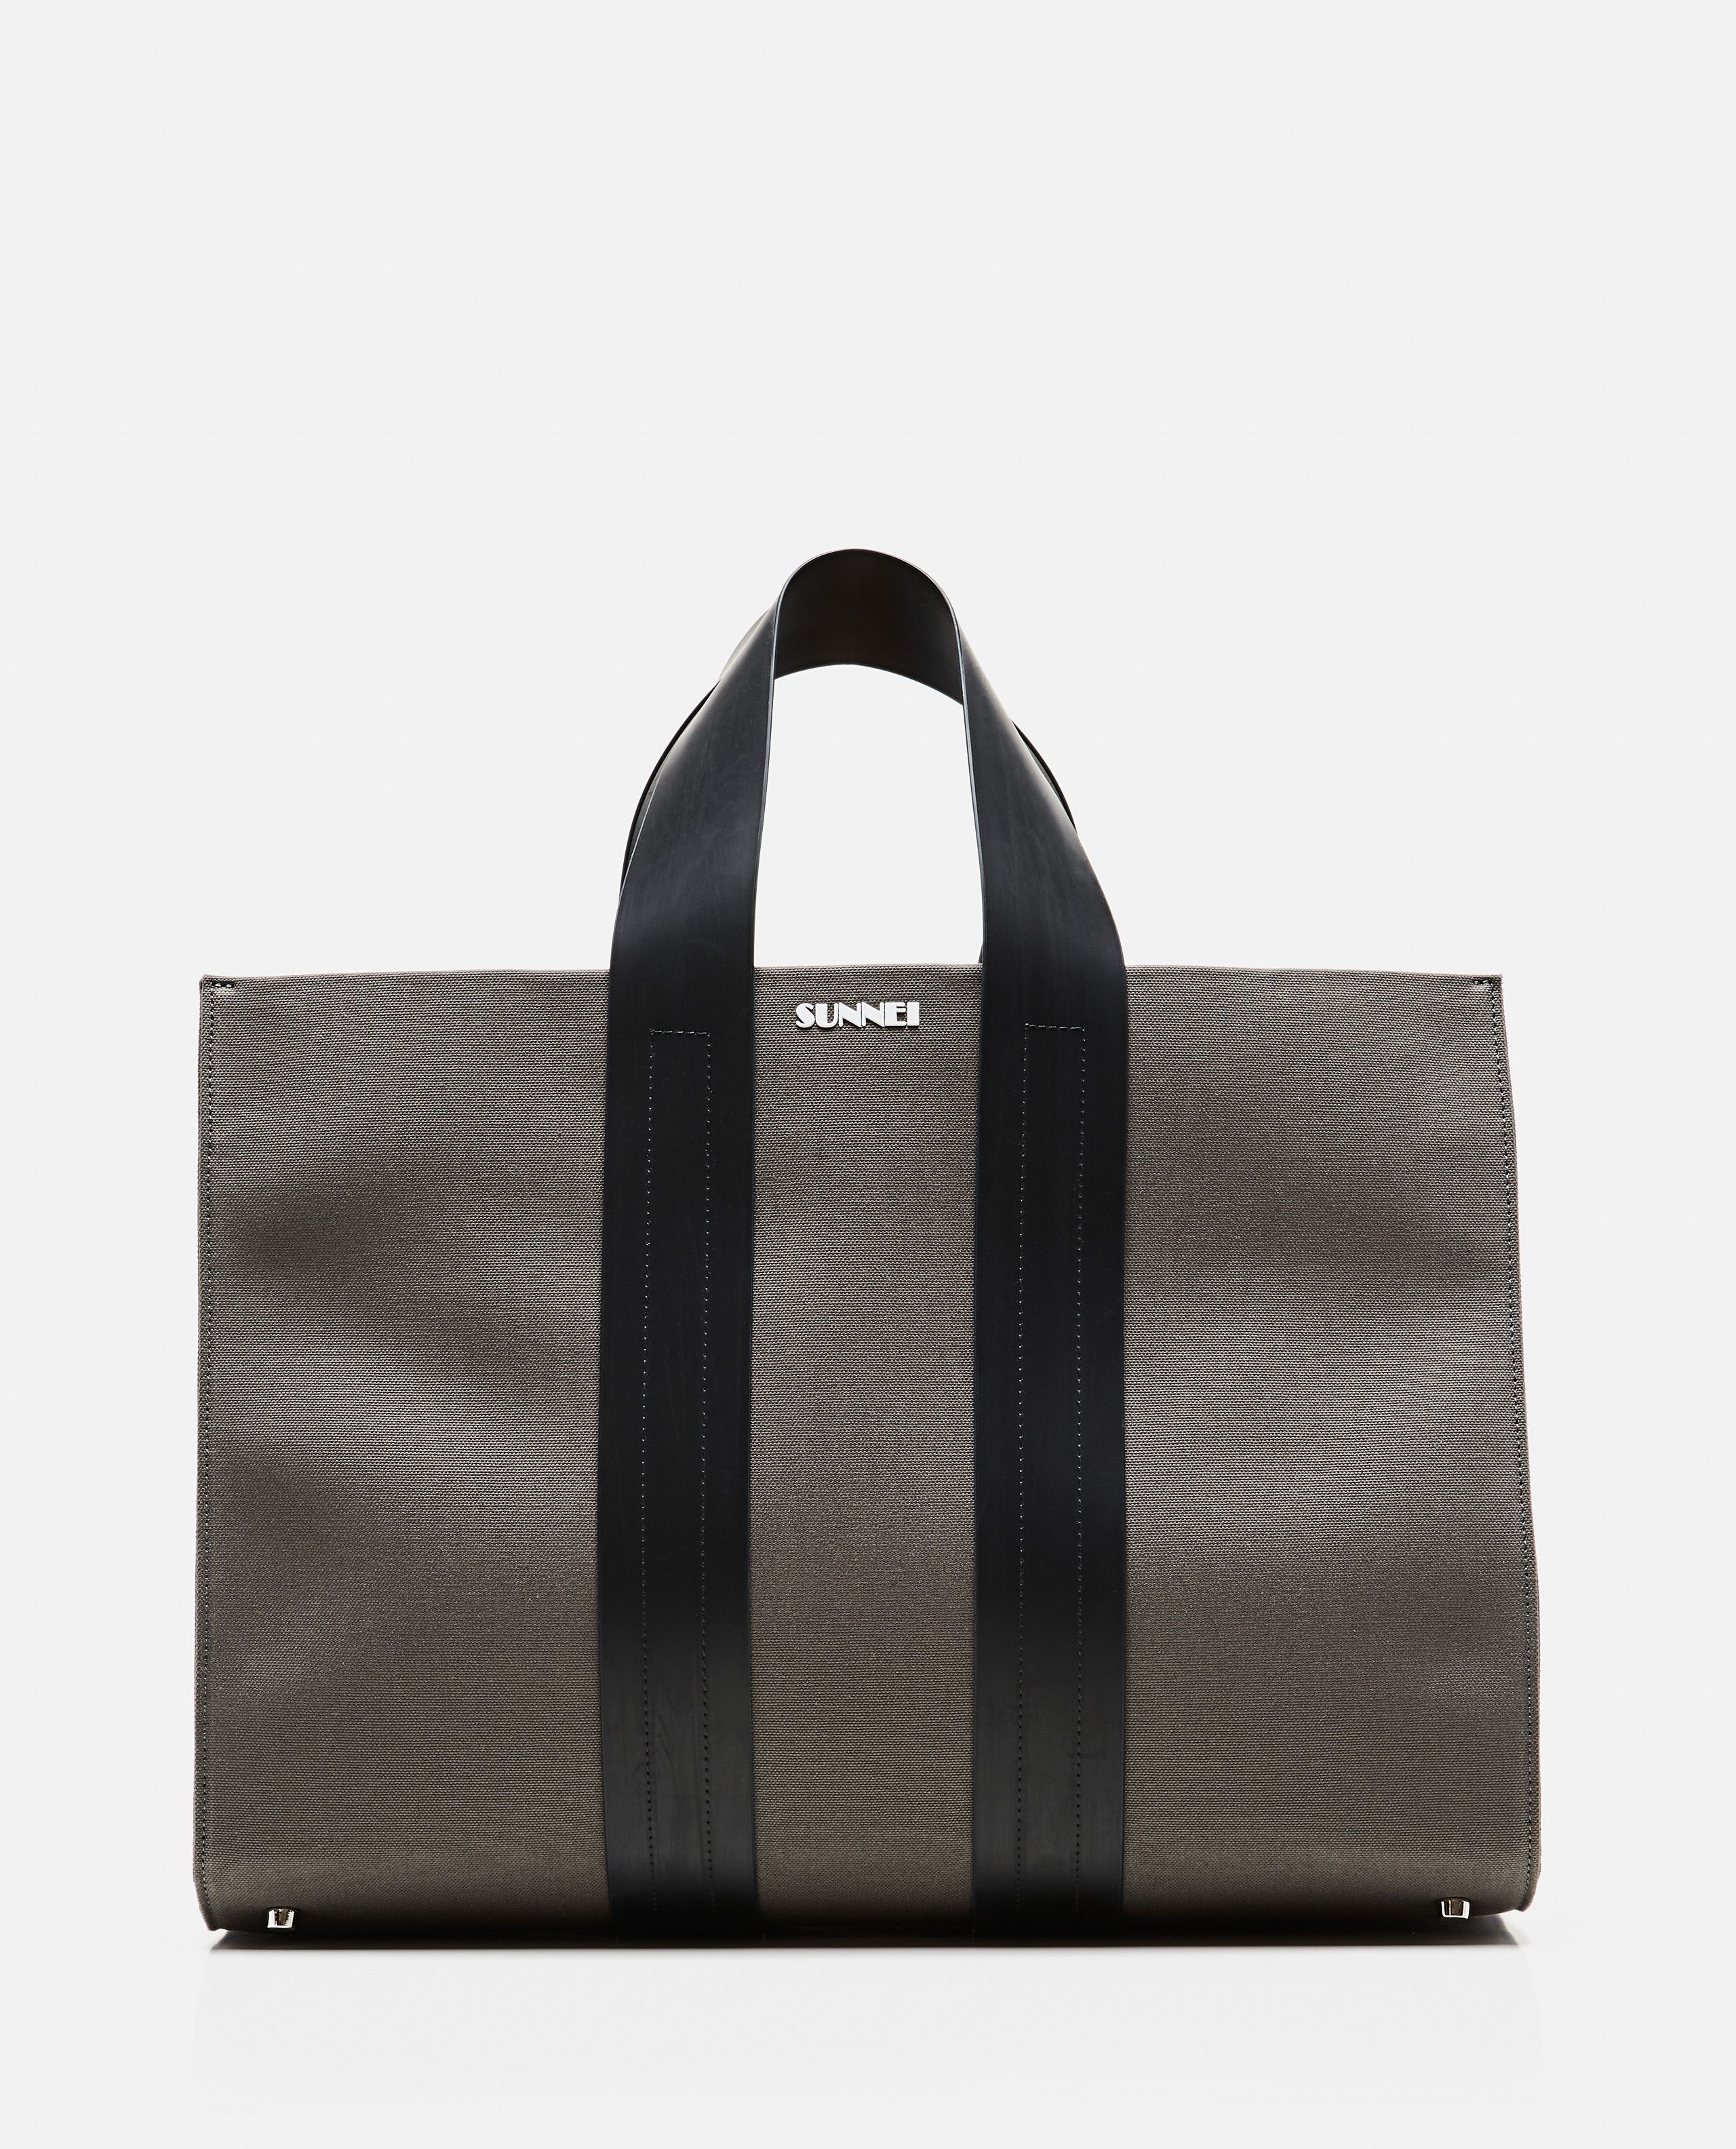 SUNNEI X BIFFI Parallelepiped tote bag